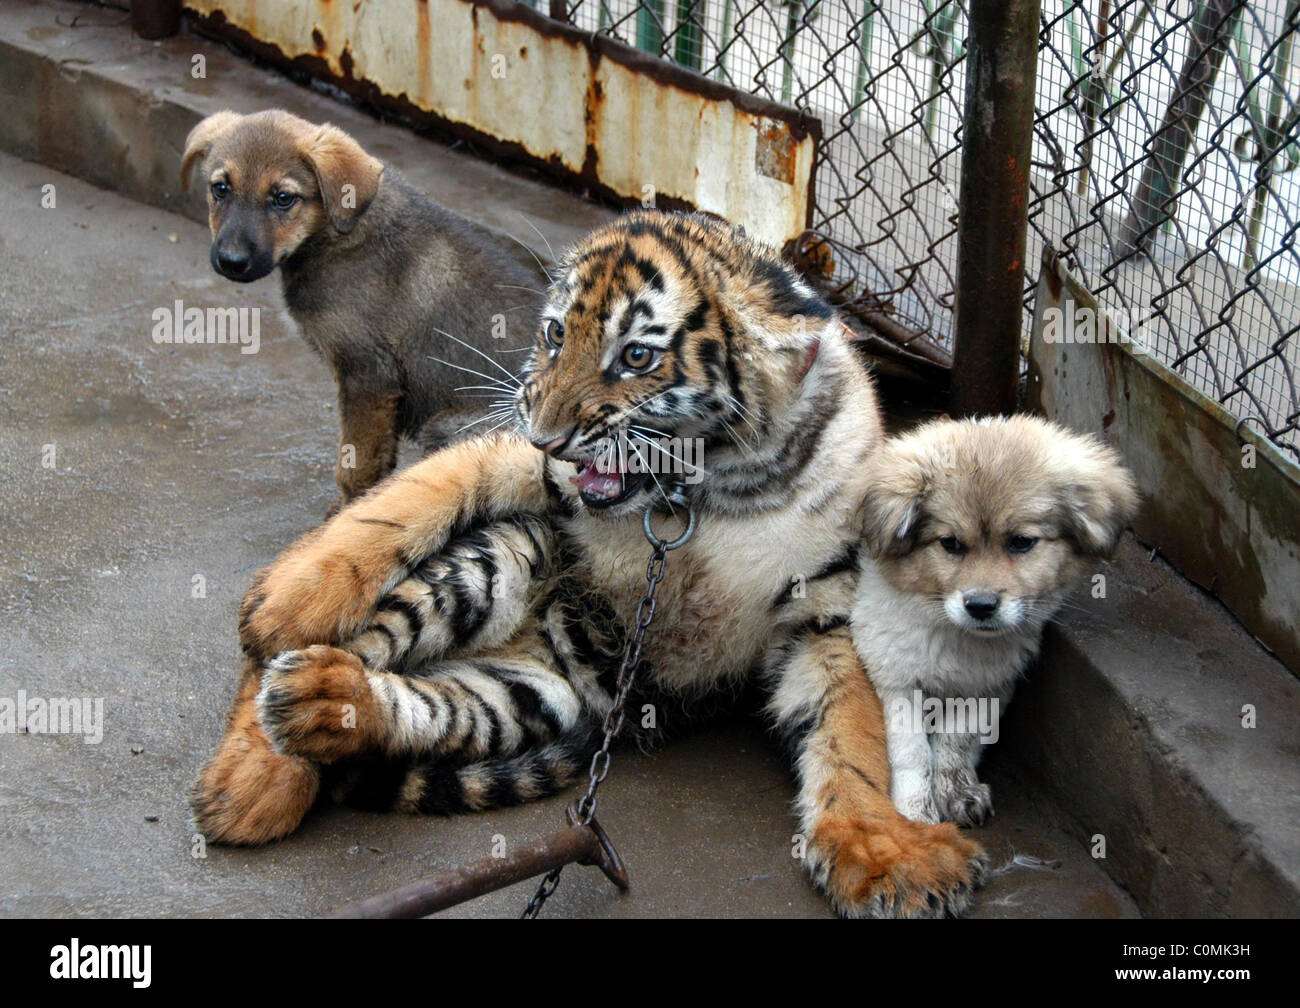 Roar deal for pups a dog is a tigers best friend these cute roar deal for pups a dog is a tigers best friend these cute puppies kept a tiger cub company while he was weaned from birth voltagebd Gallery